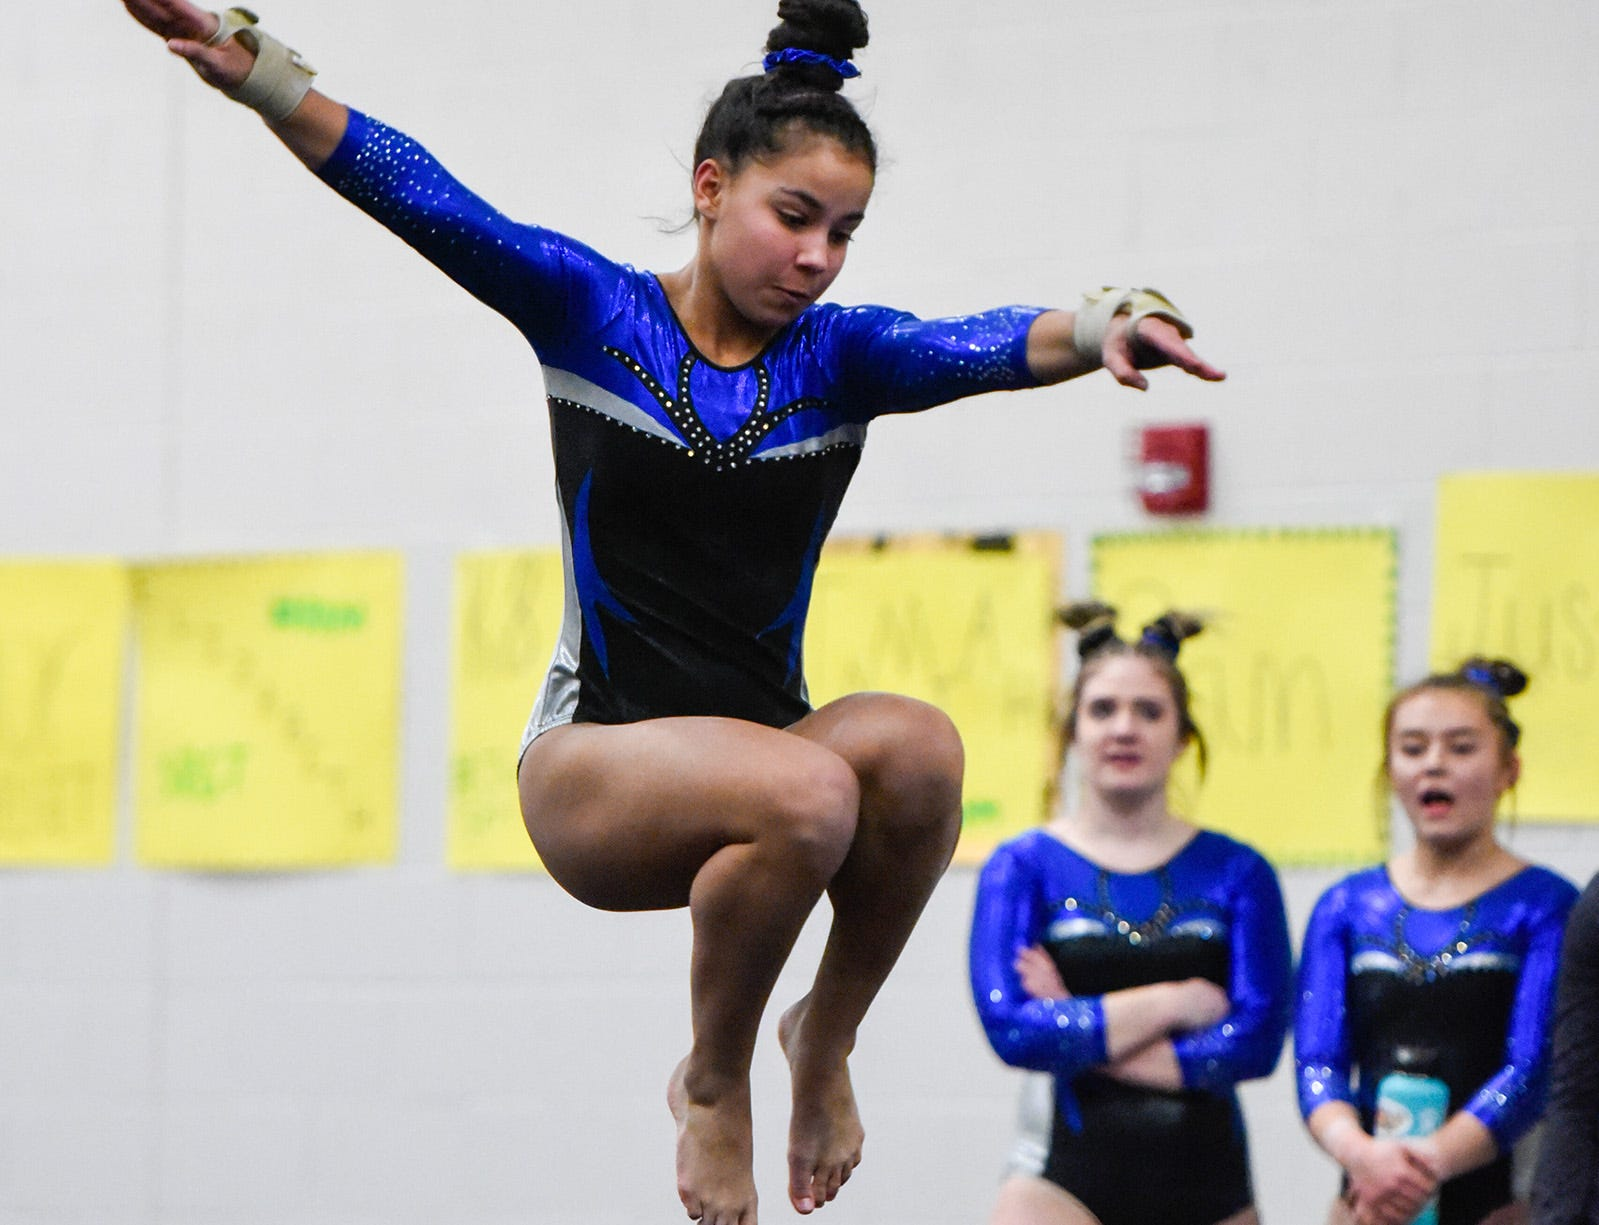 Sartell's Ella Simmons does her floor routine Thursday, Jan. 3, at the Sauk Rapids-Rice High School.